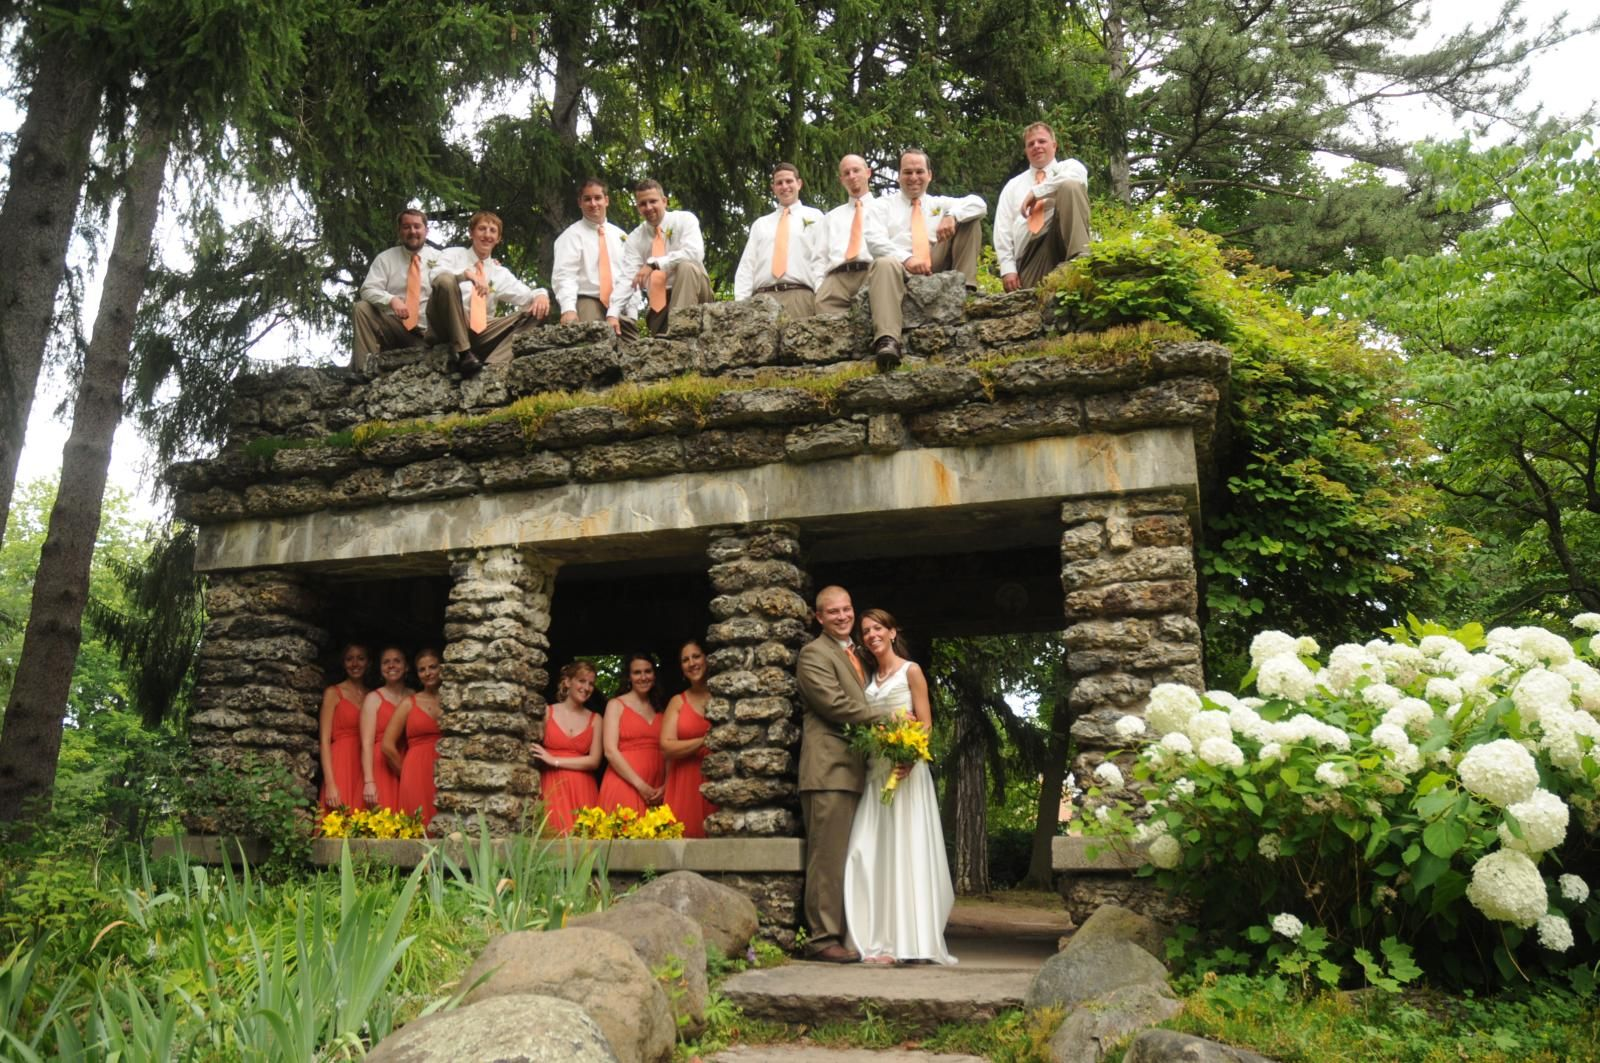 Bridal Party At Sonnenberg Gardens Outdoor Wedding Reception Outdoor Wedding Bridal Party